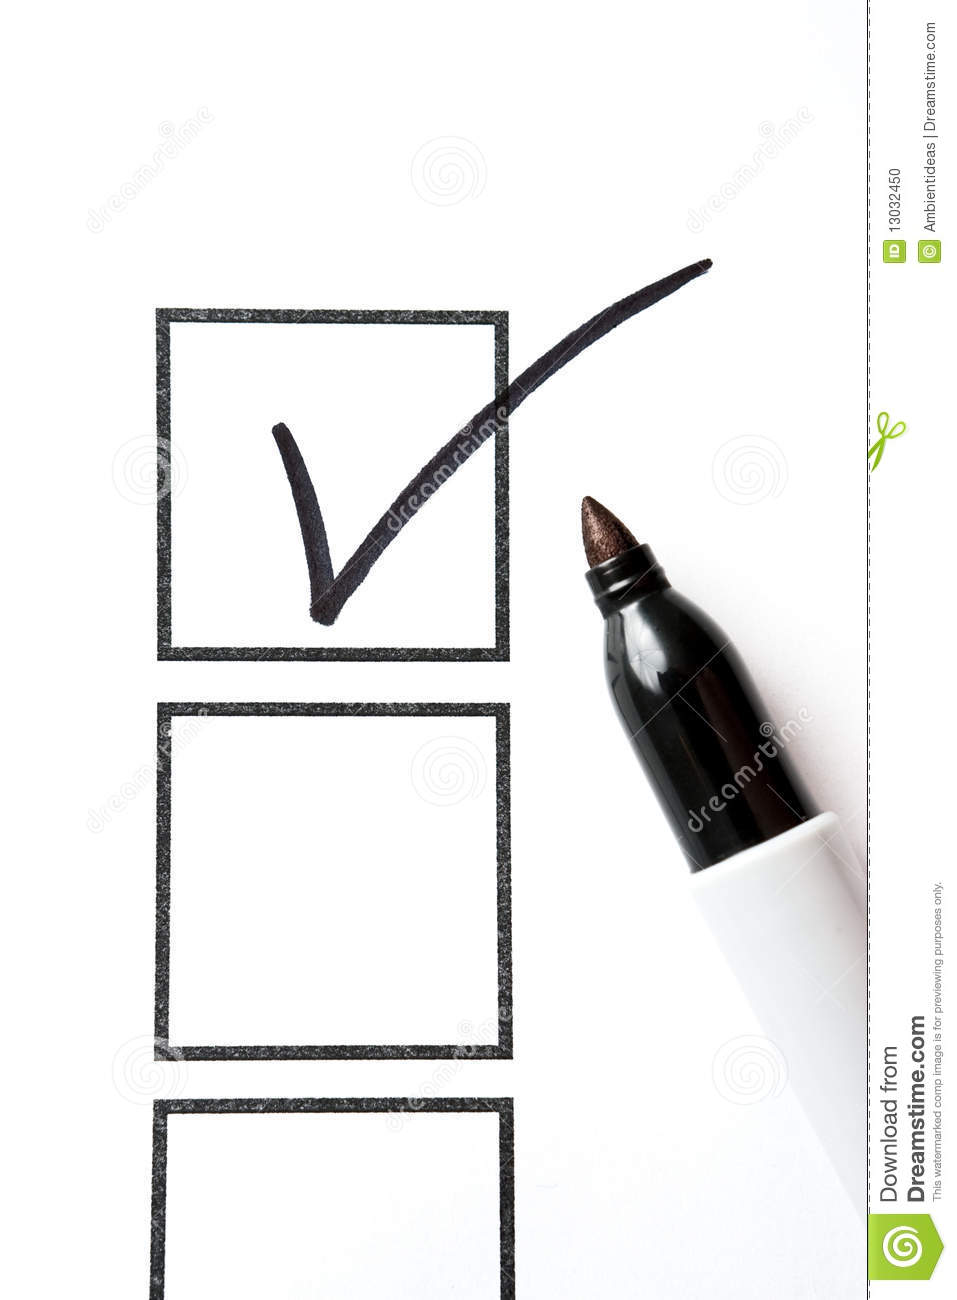 Box Stock Project >> Marker With Check Mark And Box Stock Photo - Image: 13032450